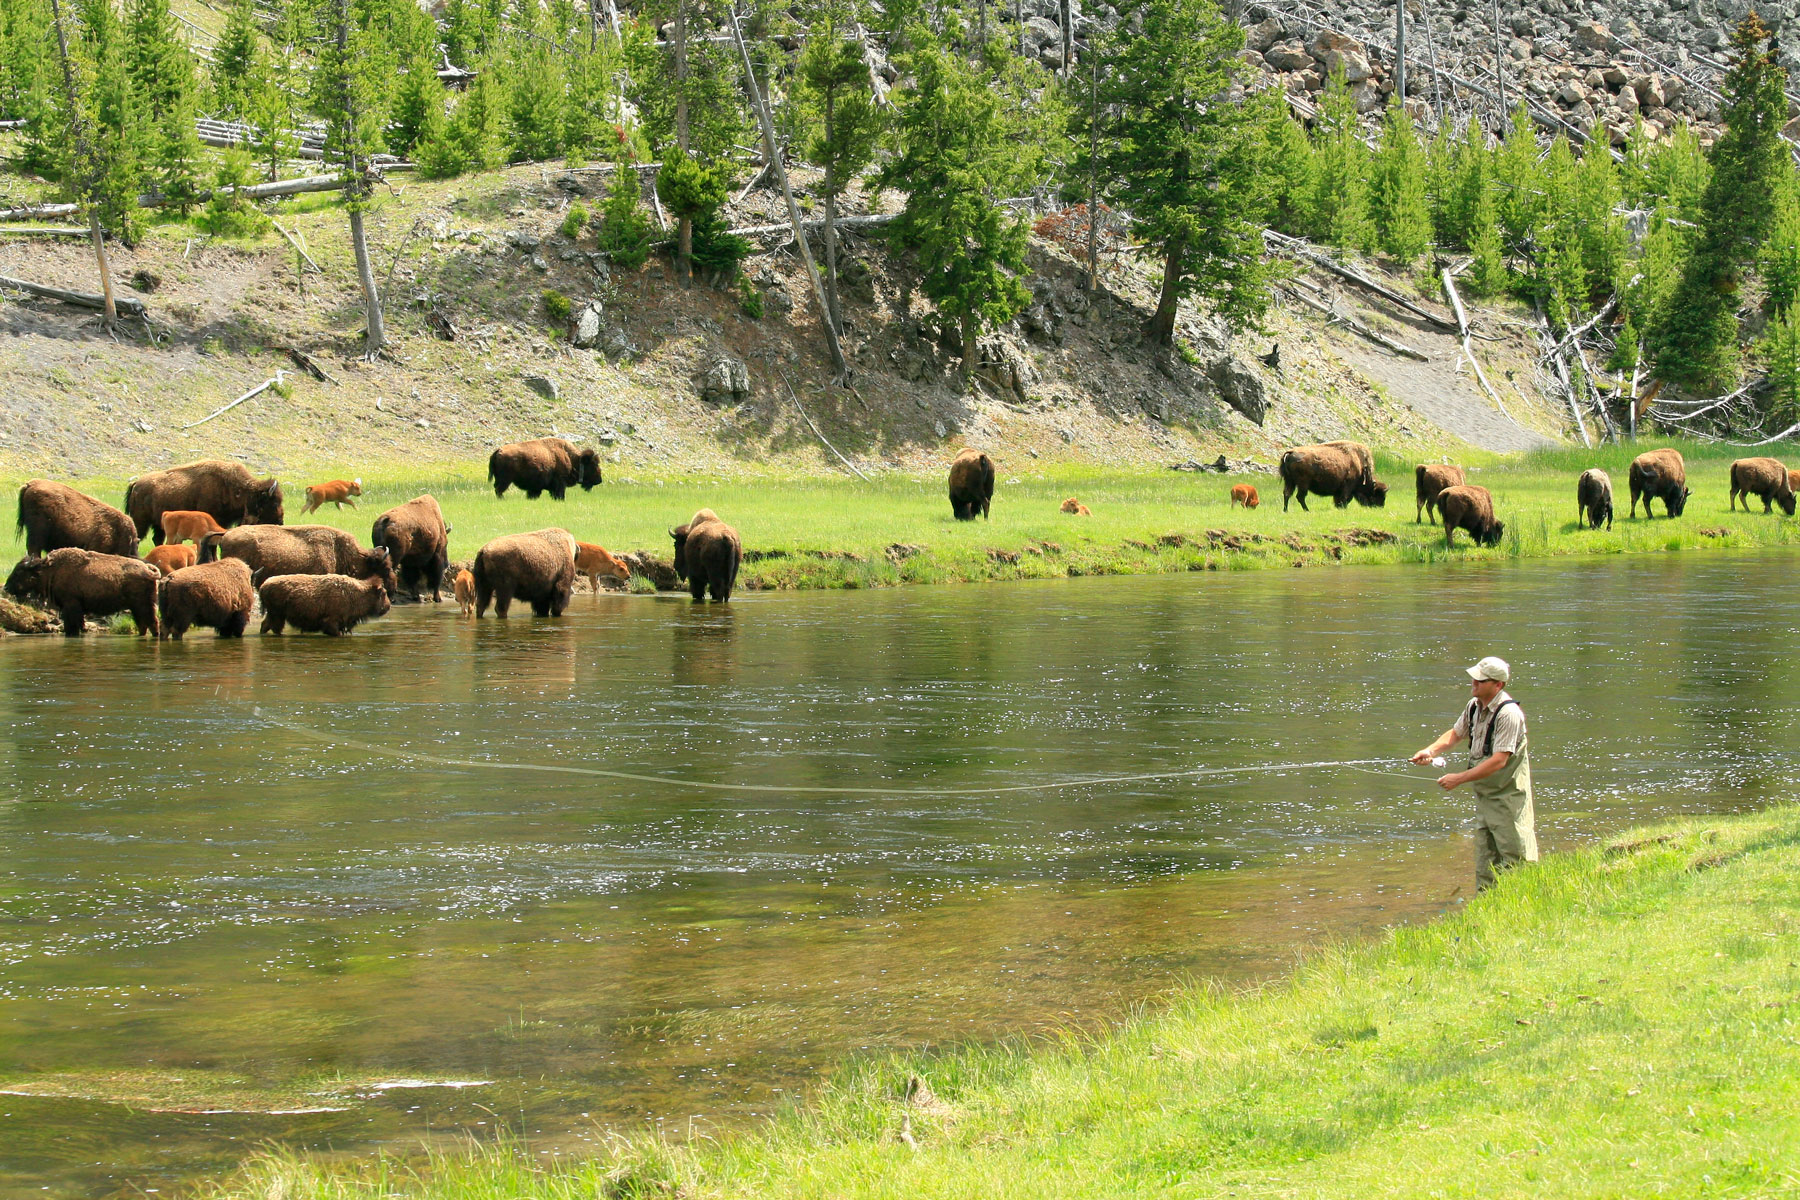 Man fishing in river with bison roaming in the background